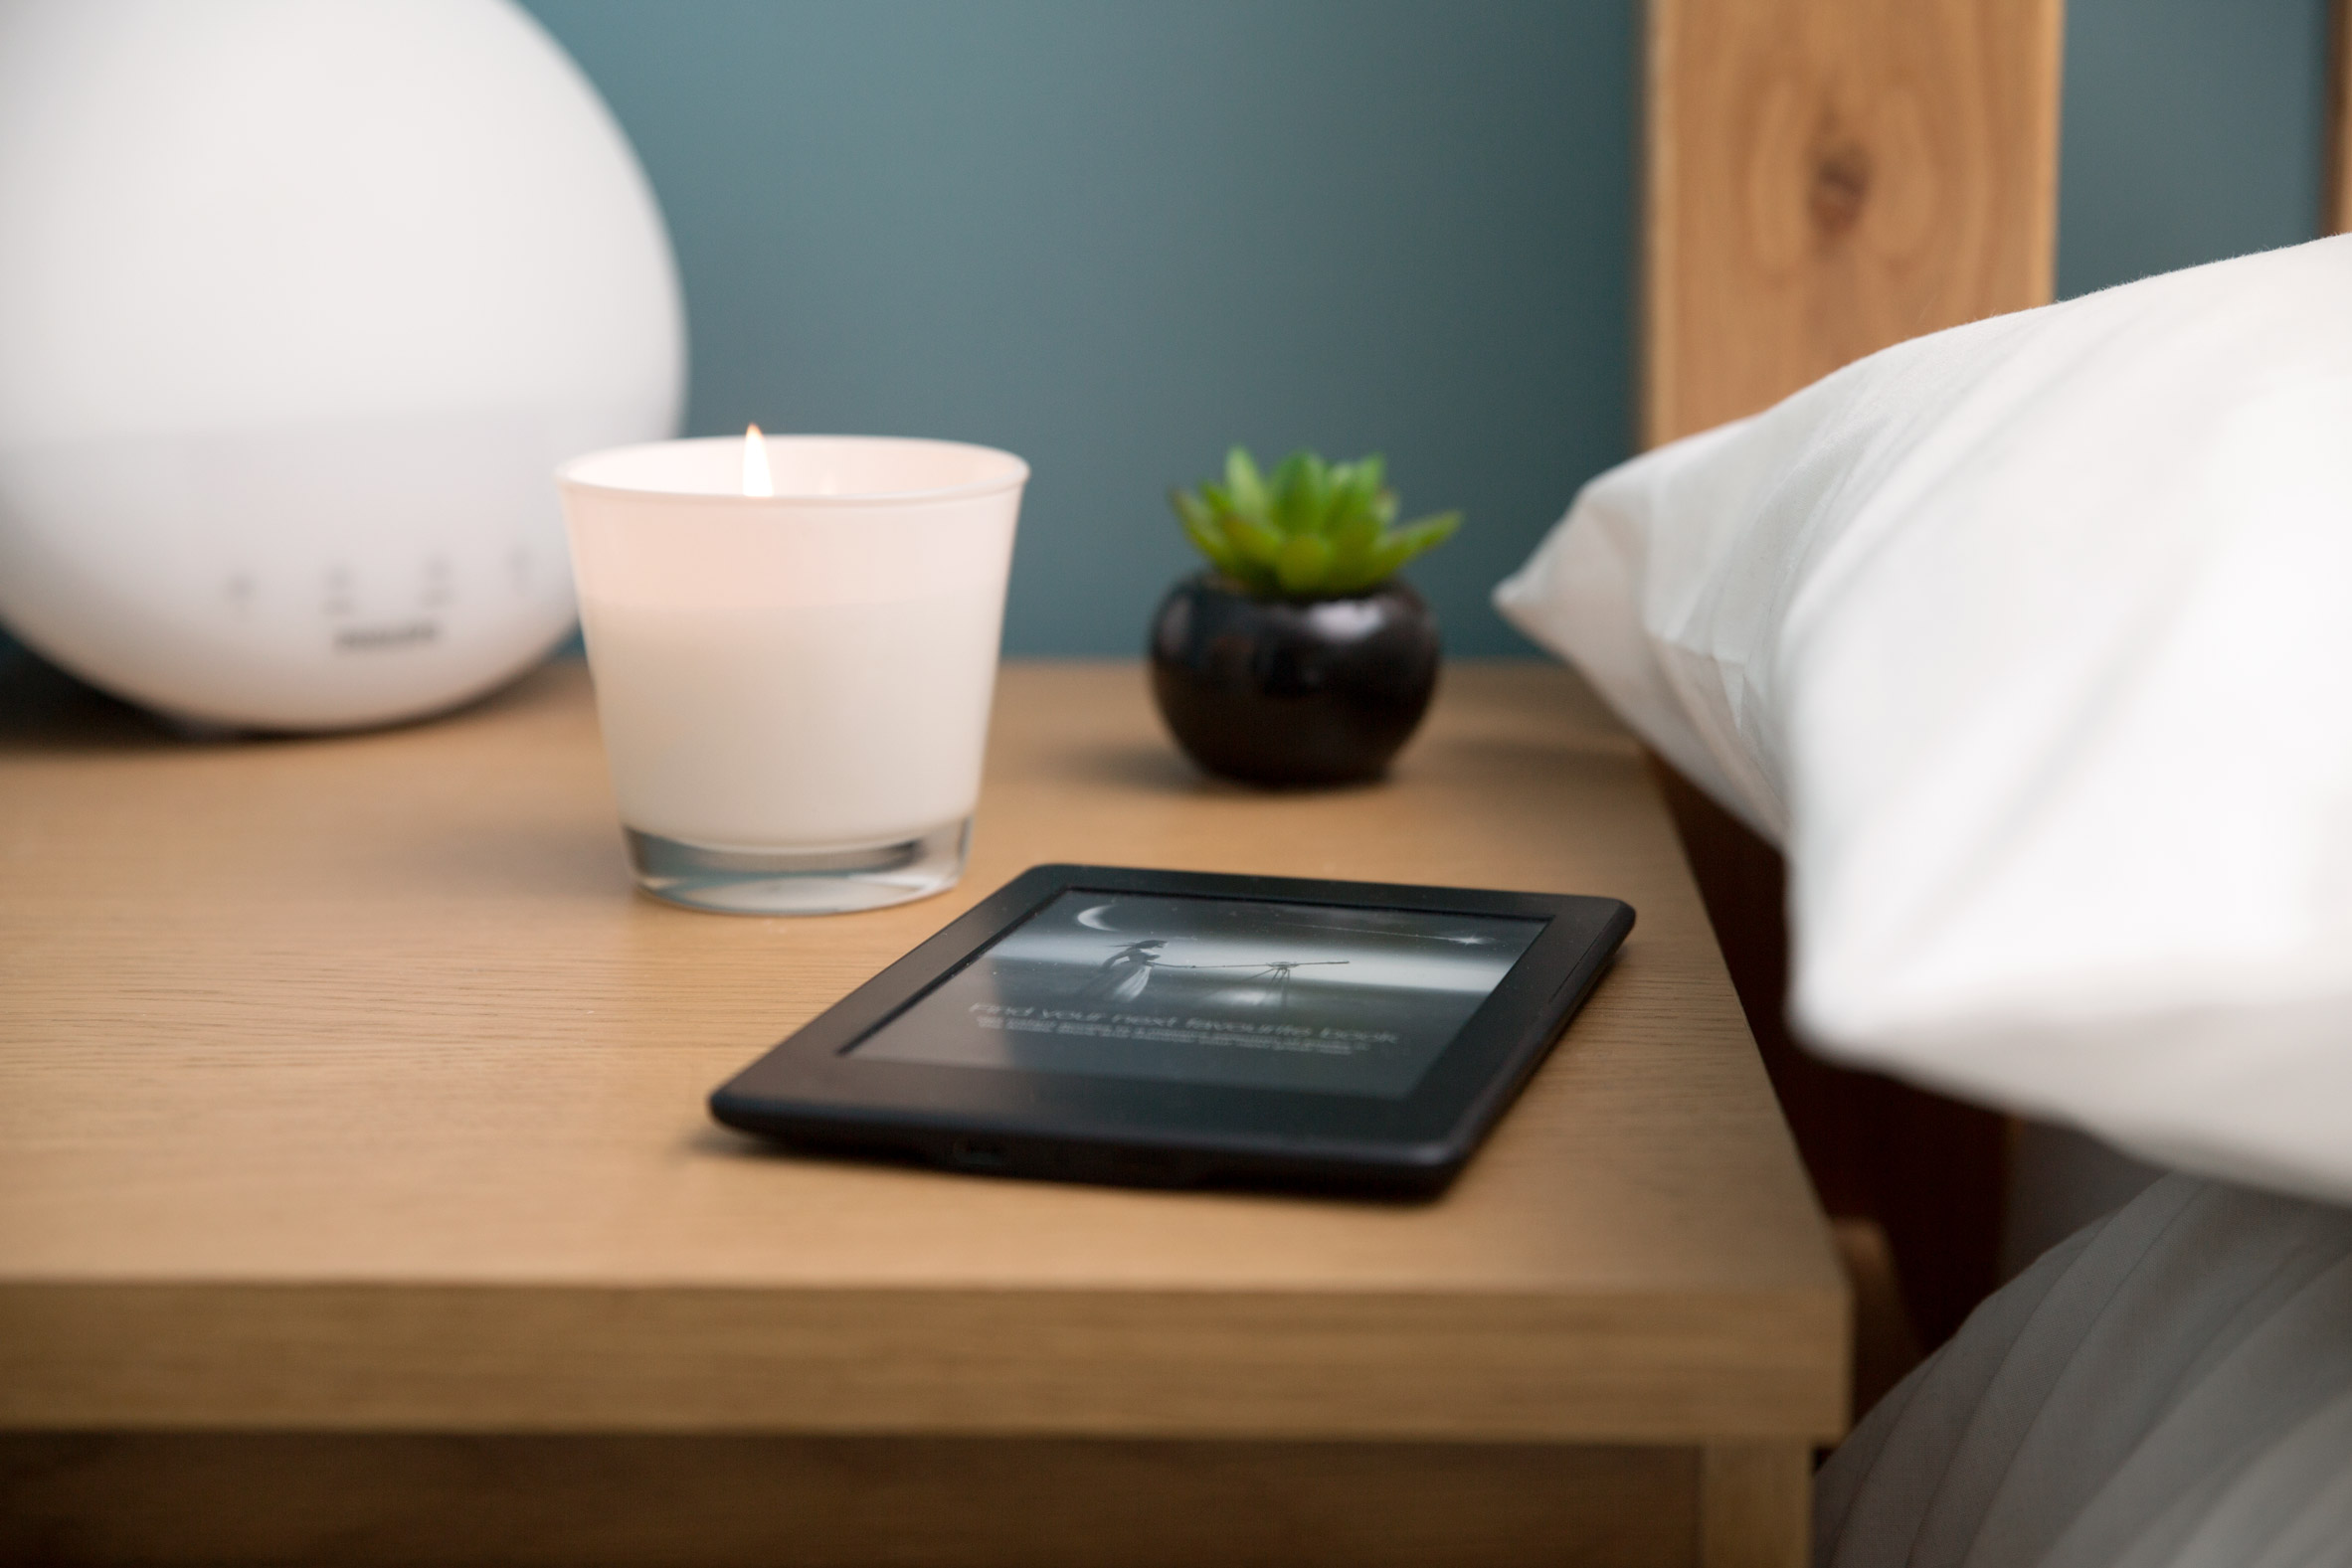 Kindle sits on a bed side table with a candle and a plant